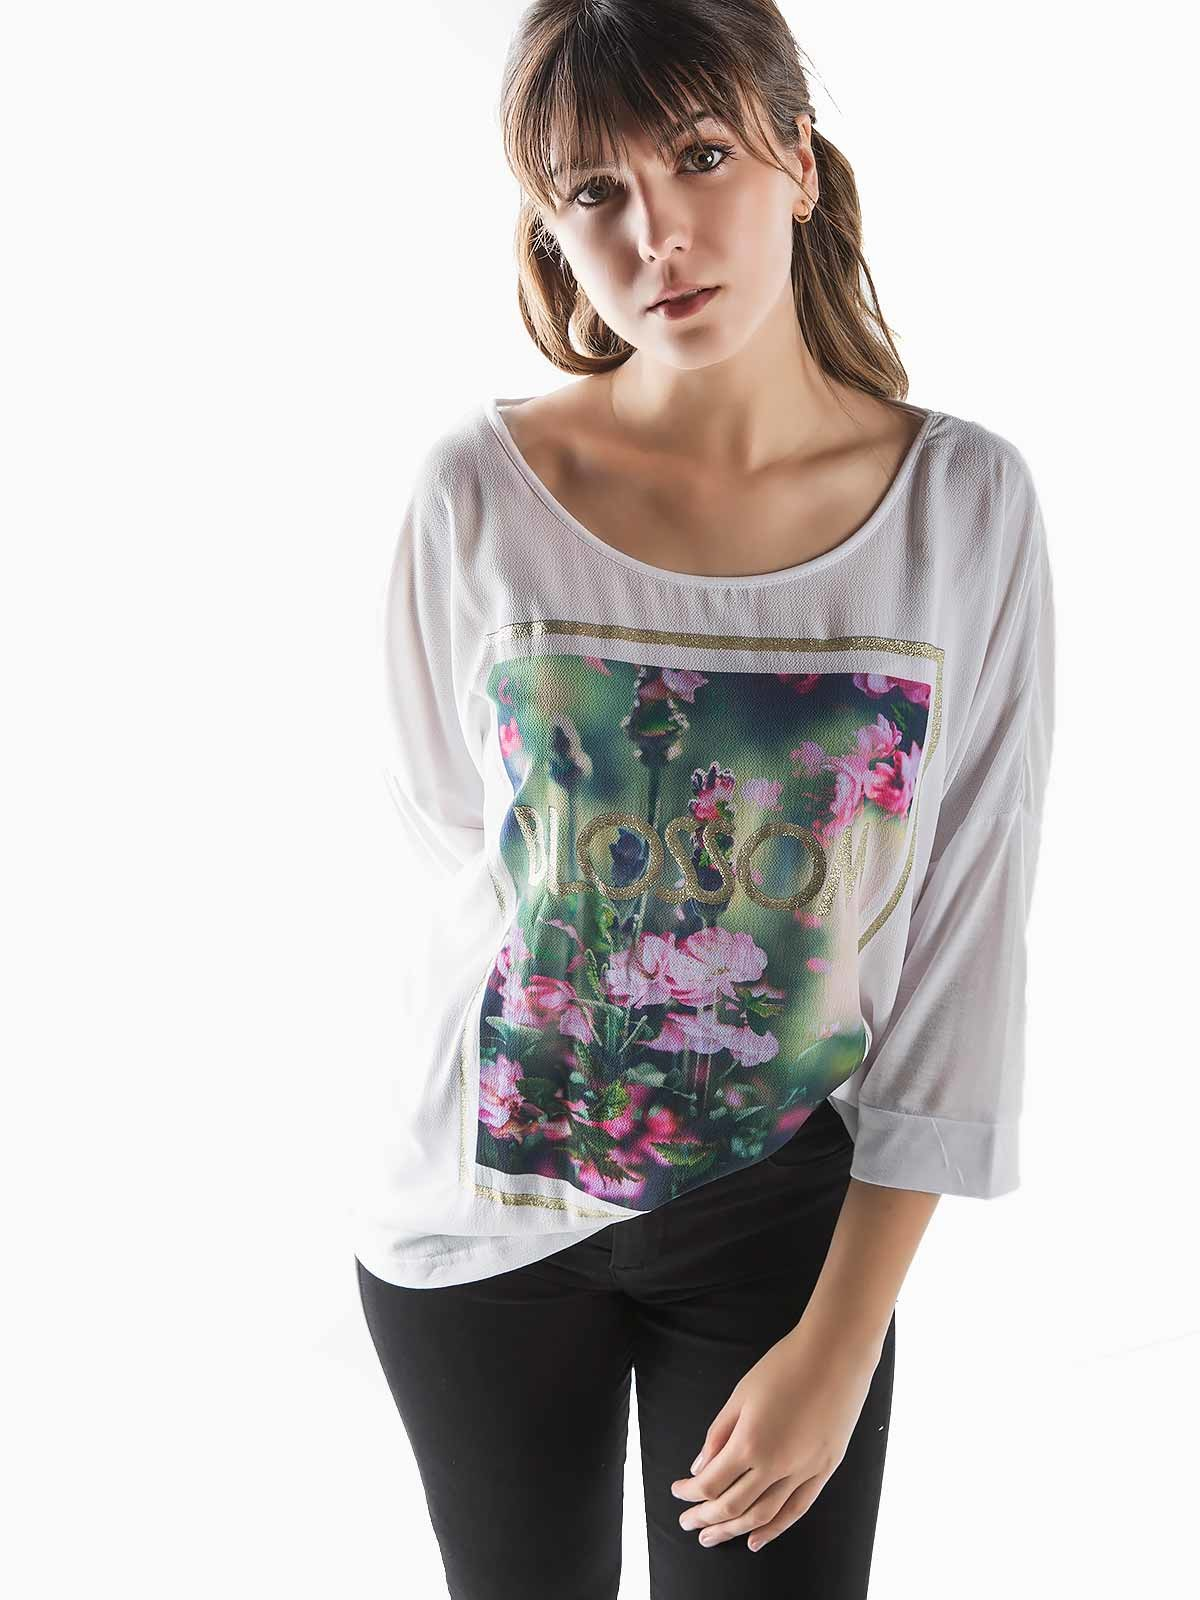 Camisola floral Blossom